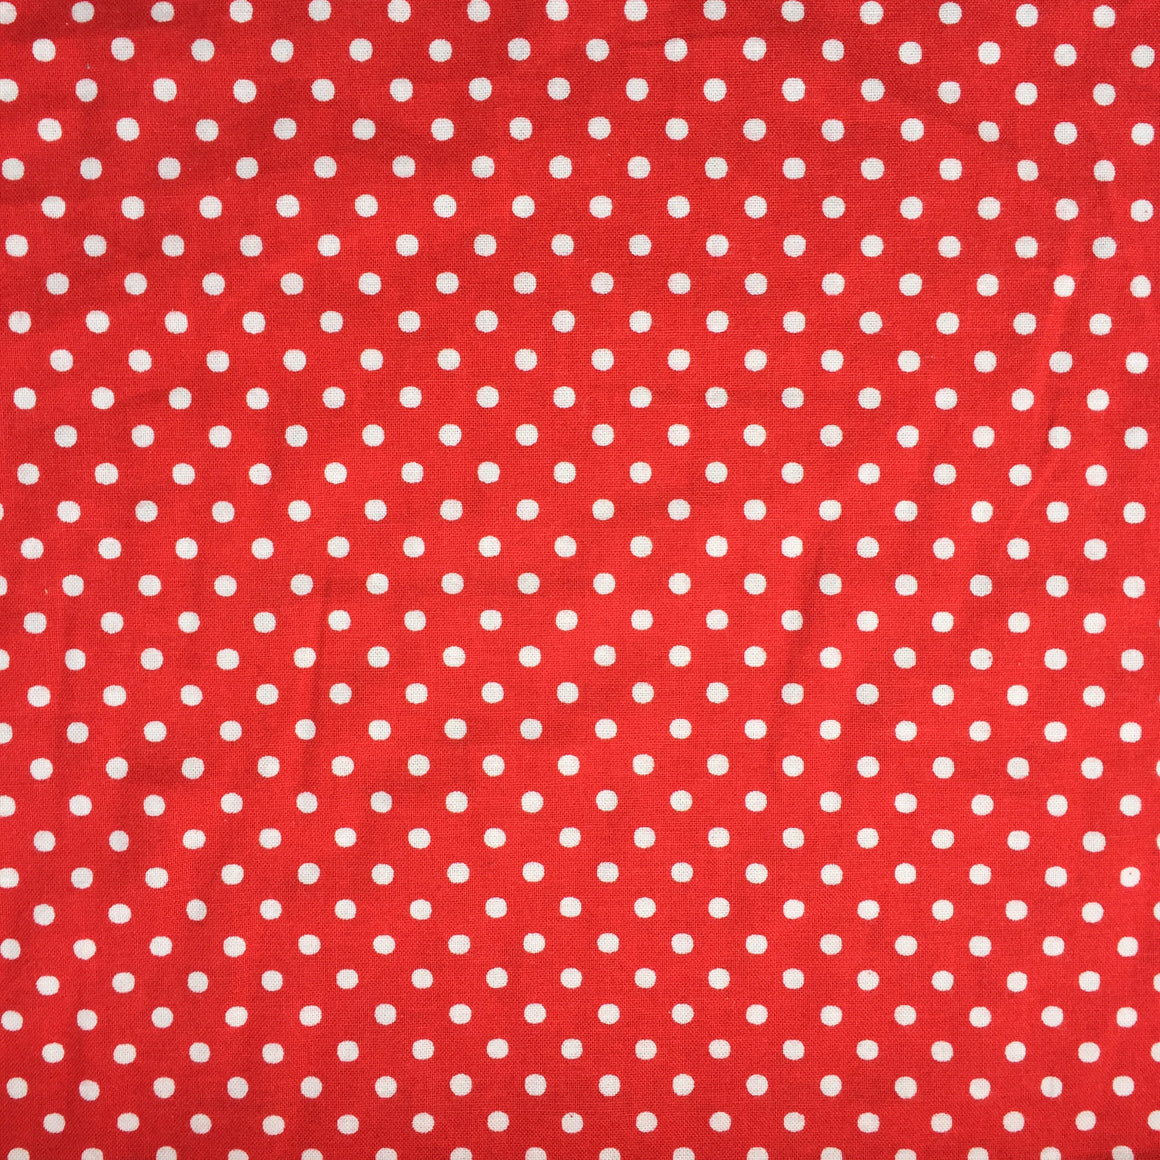 RJR Fabric Crazy for Dots & Stripes - Red Polkadots 8174